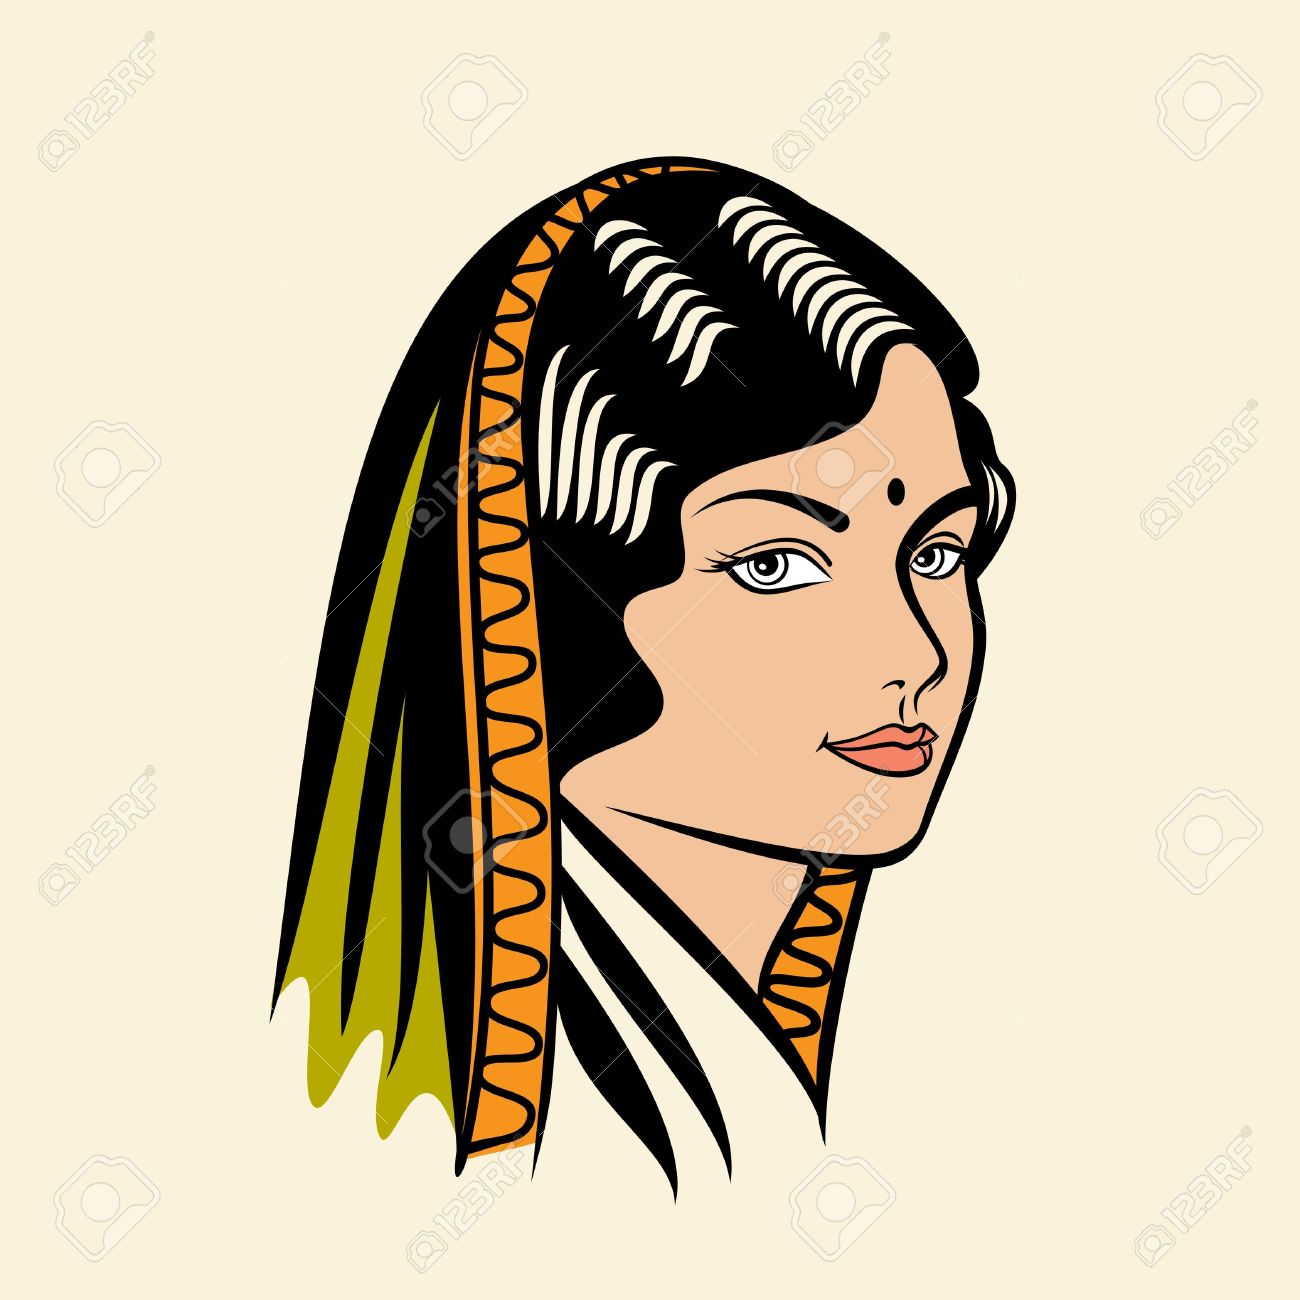 Traditional indian lady clipart jpg royalty free library Indian lady clipart - ClipartFest jpg royalty free library